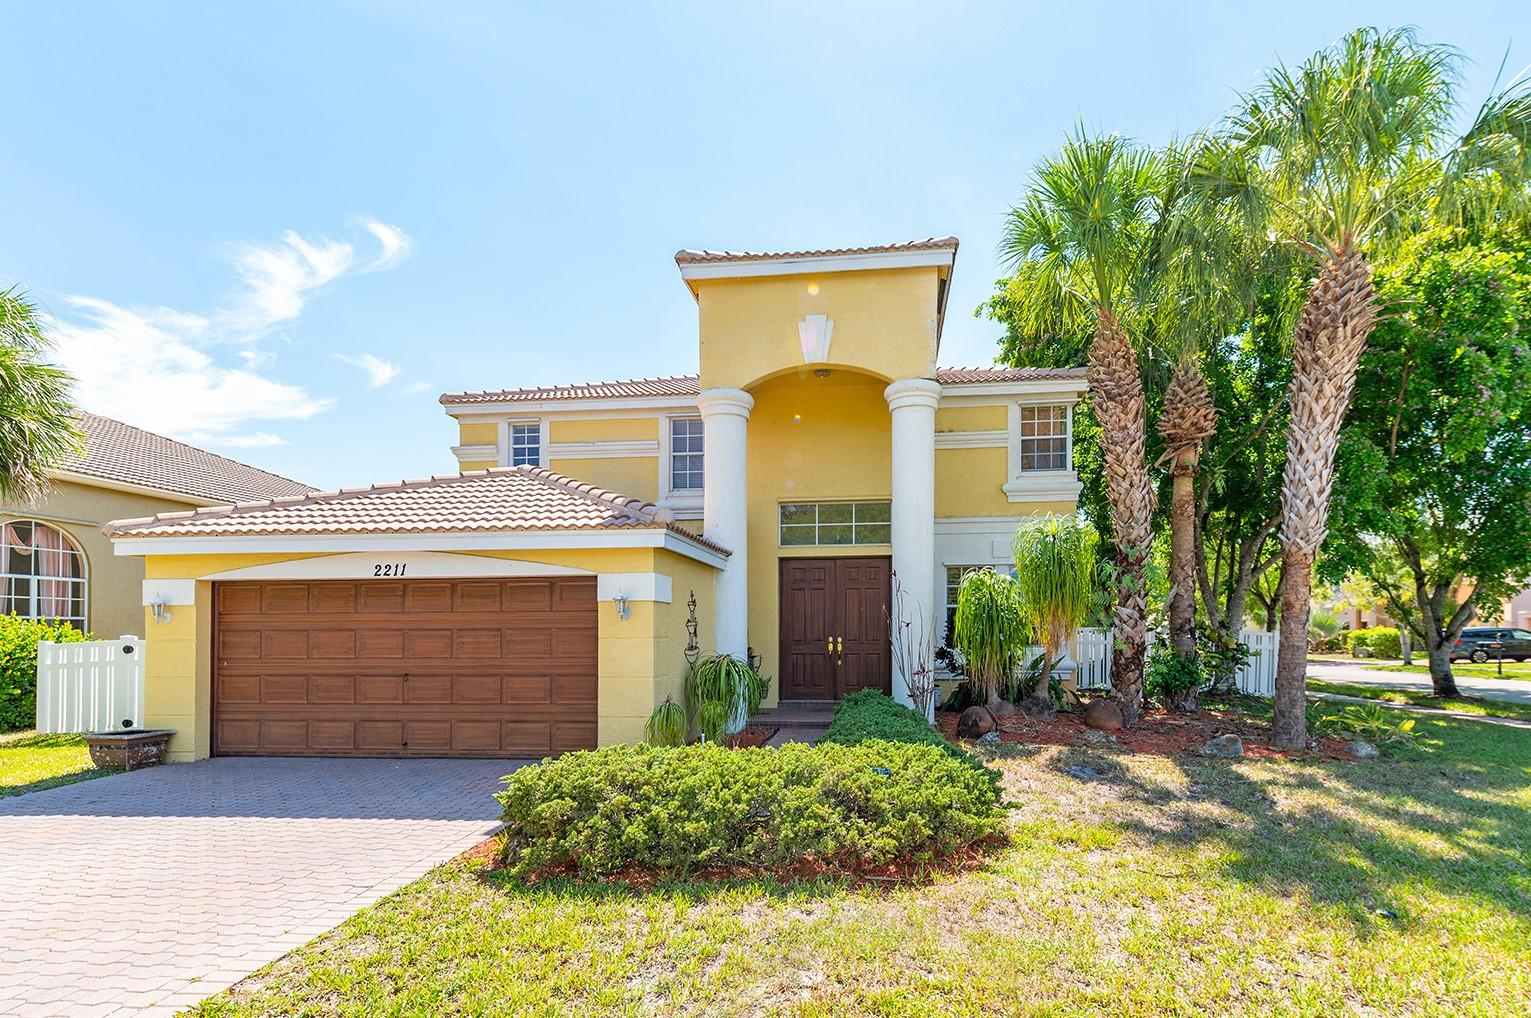 2211  Sloane Place  For Sale 10716871, FL